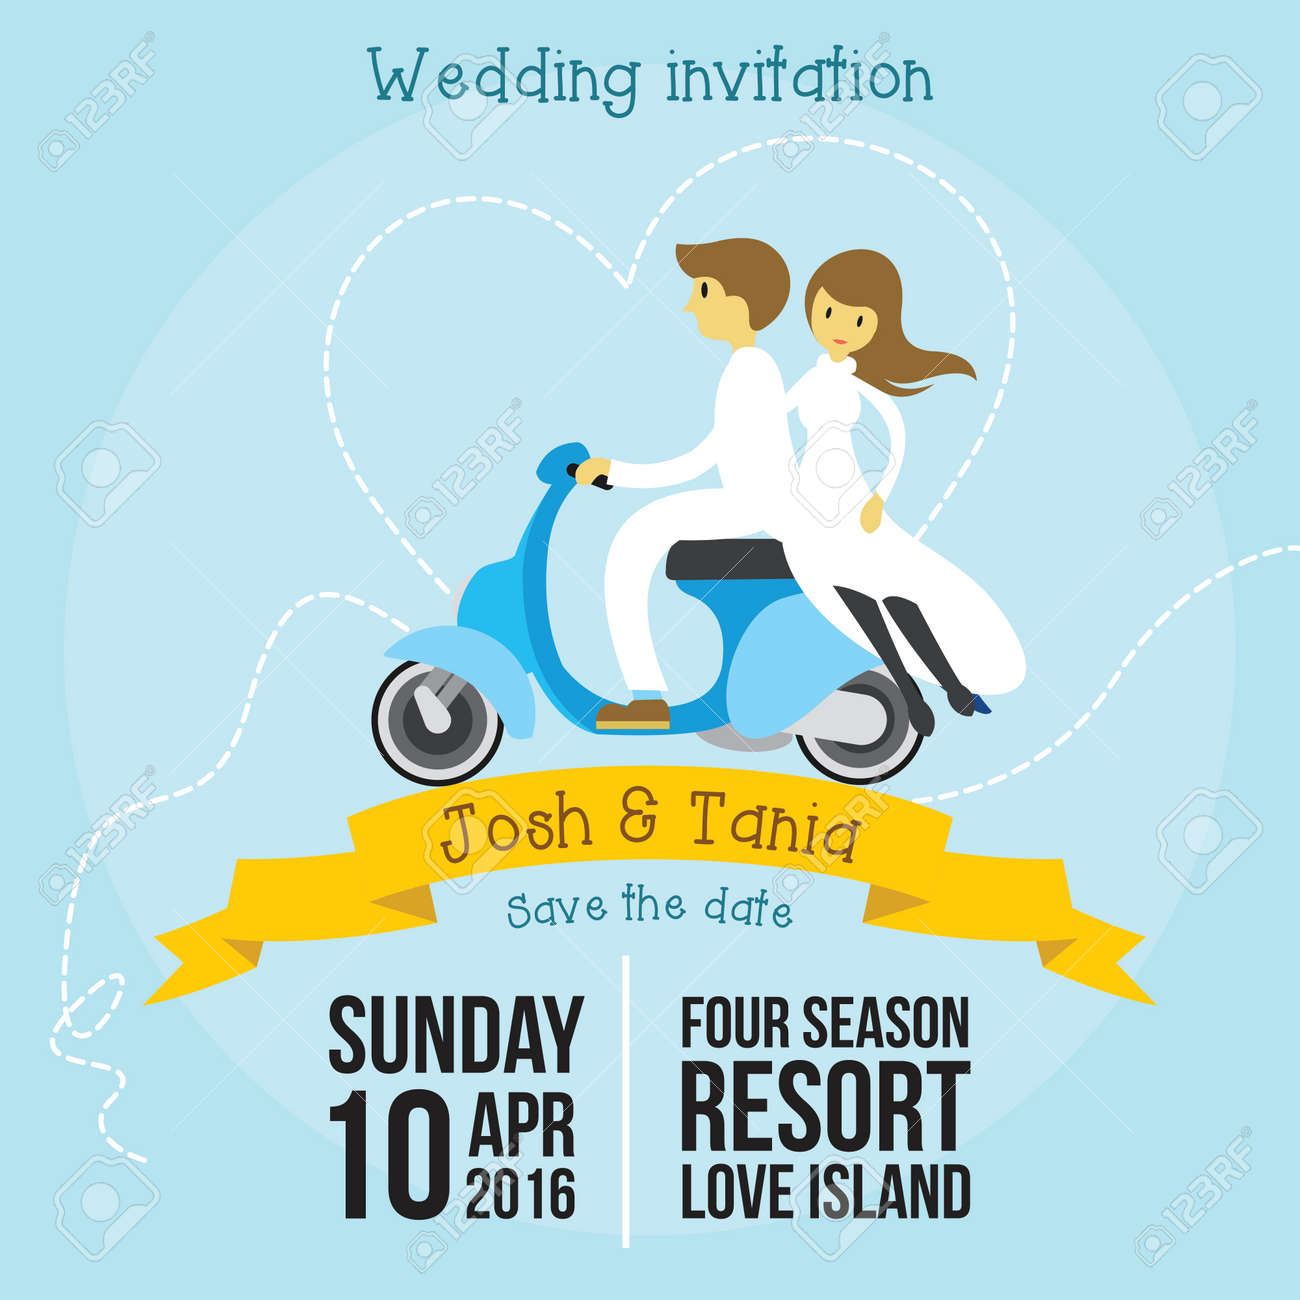 Cute Wedding Invitation Cartoon Style Template With Soft Blue